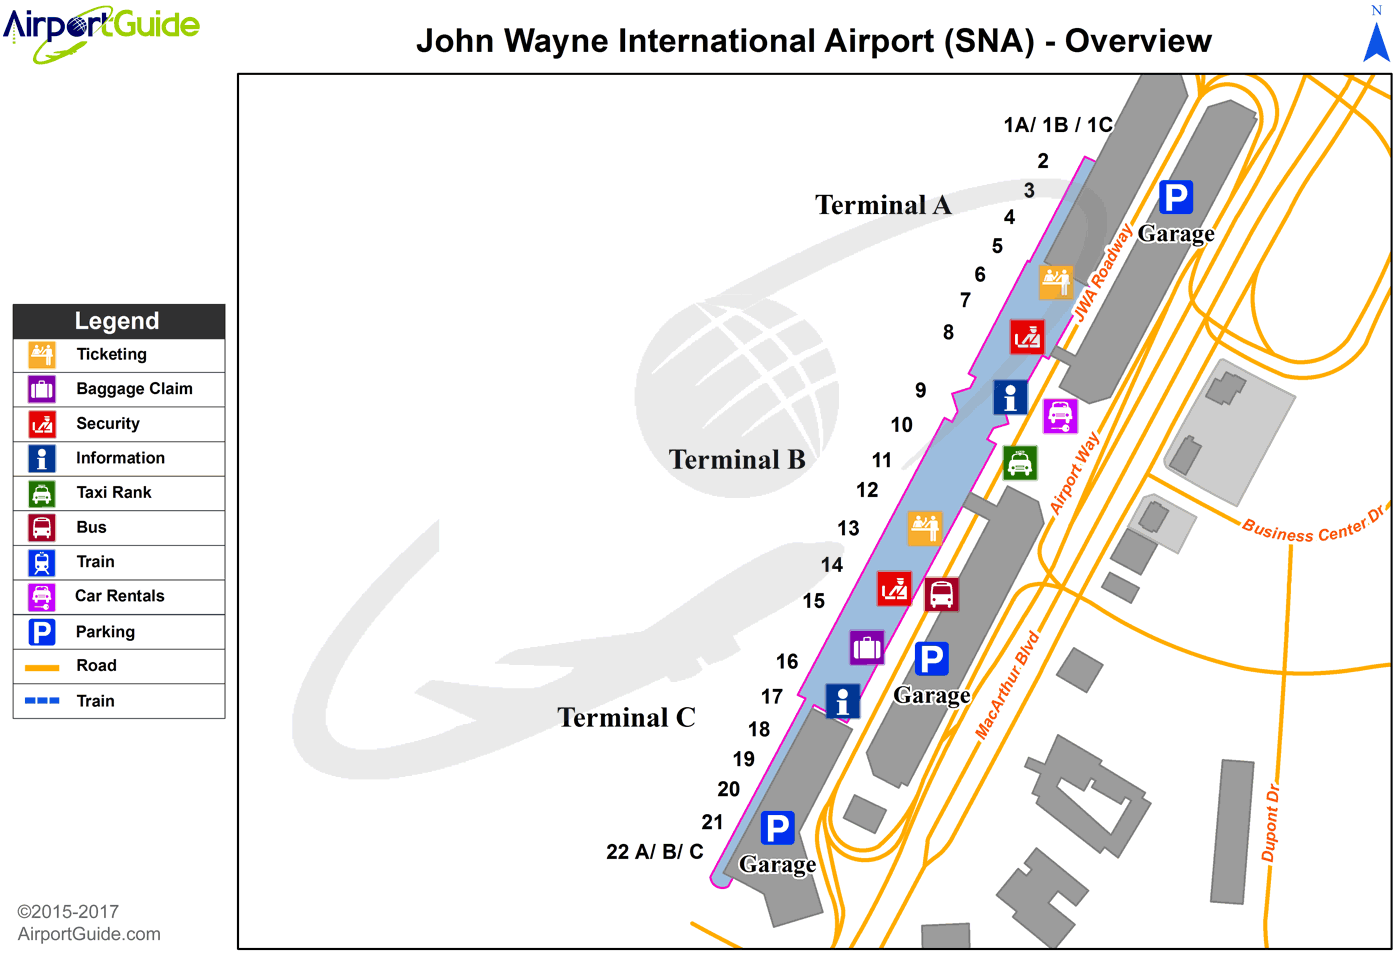 Santa Ana Airport Map Santa Ana   John Wayne Airport Orange County (SNA) Airport